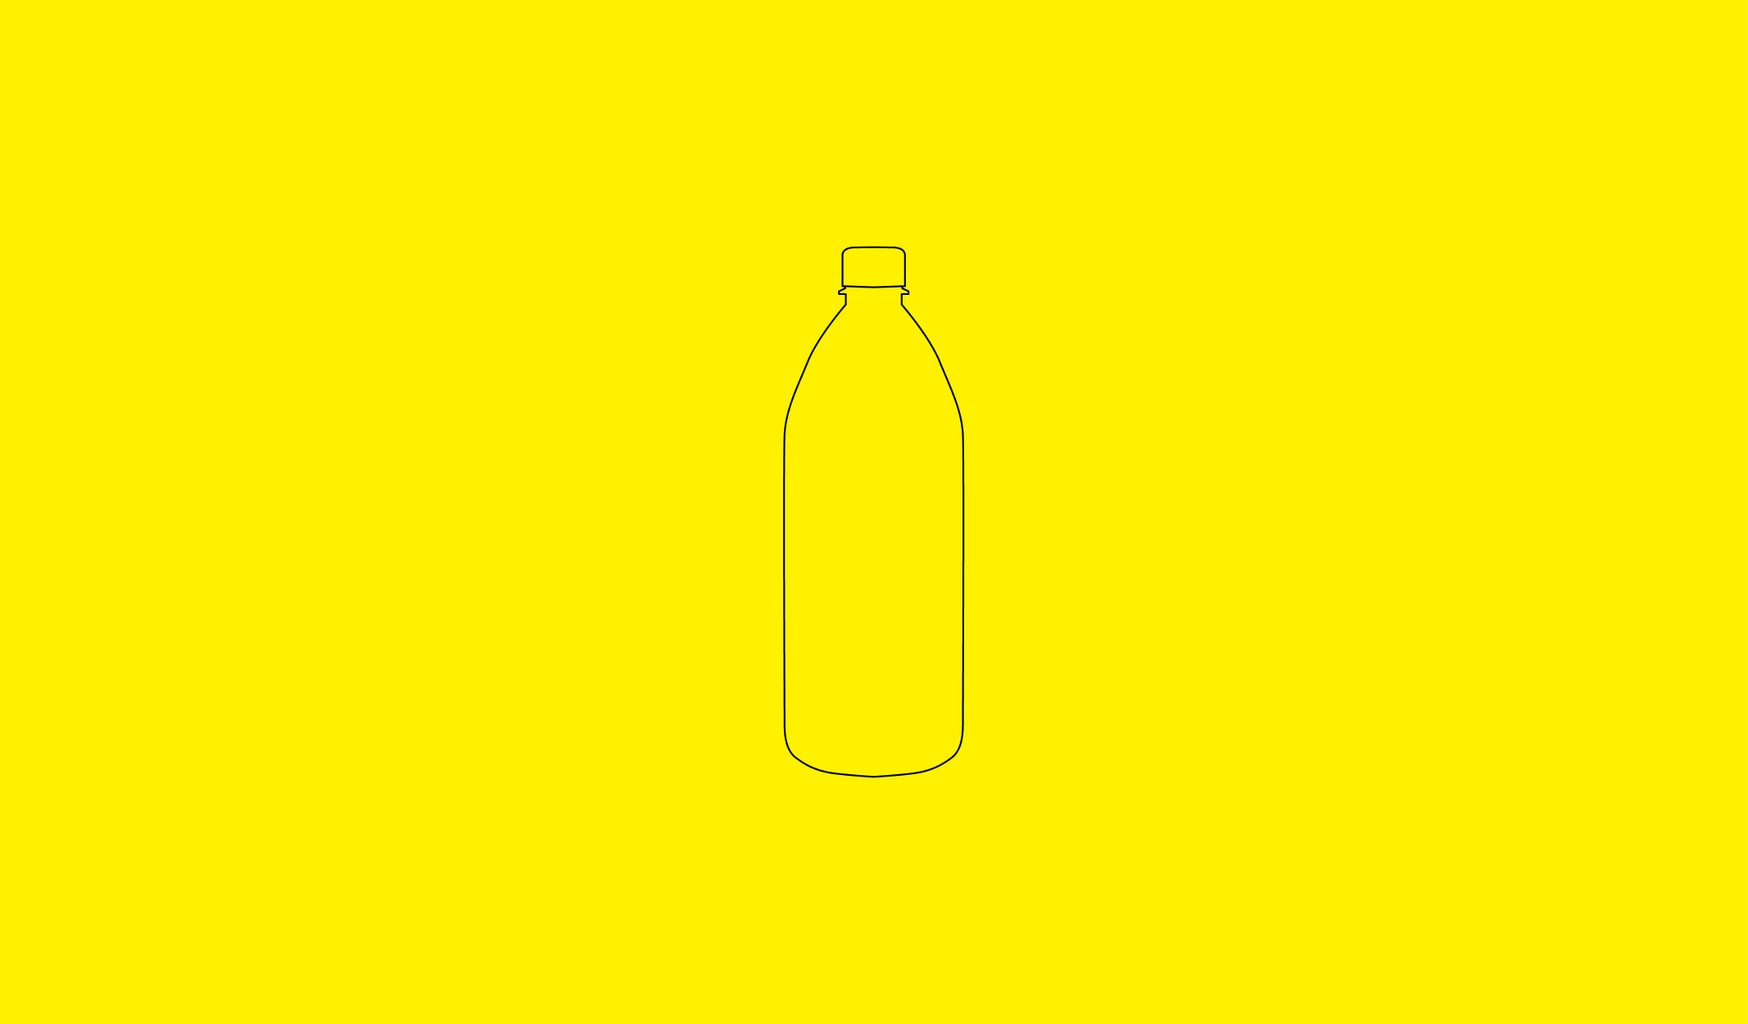 Get Hold of an Empty Plastic Bottle